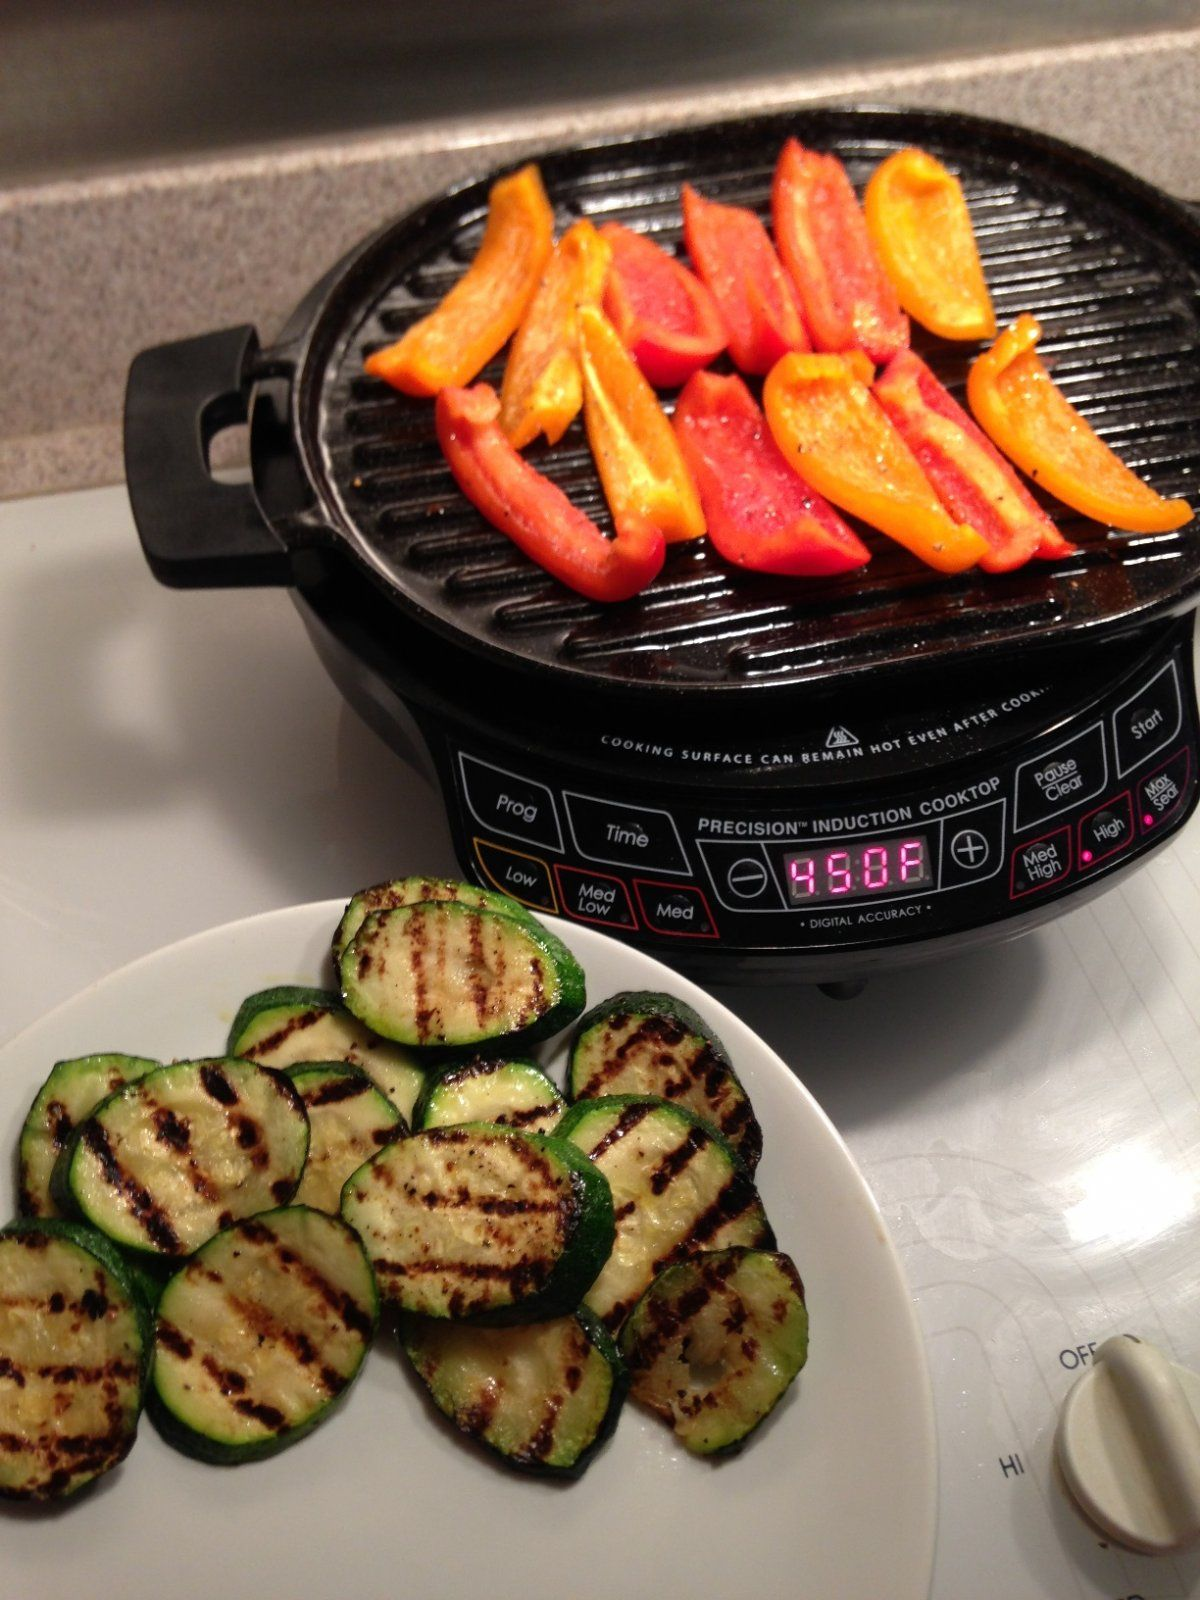 Summer May Be Coming To An End But That Doesn T Mean An End To Grilled Food With The Pic And Cast Iron Grill You Can Veggie Recipes Cooking Grilling Recipes